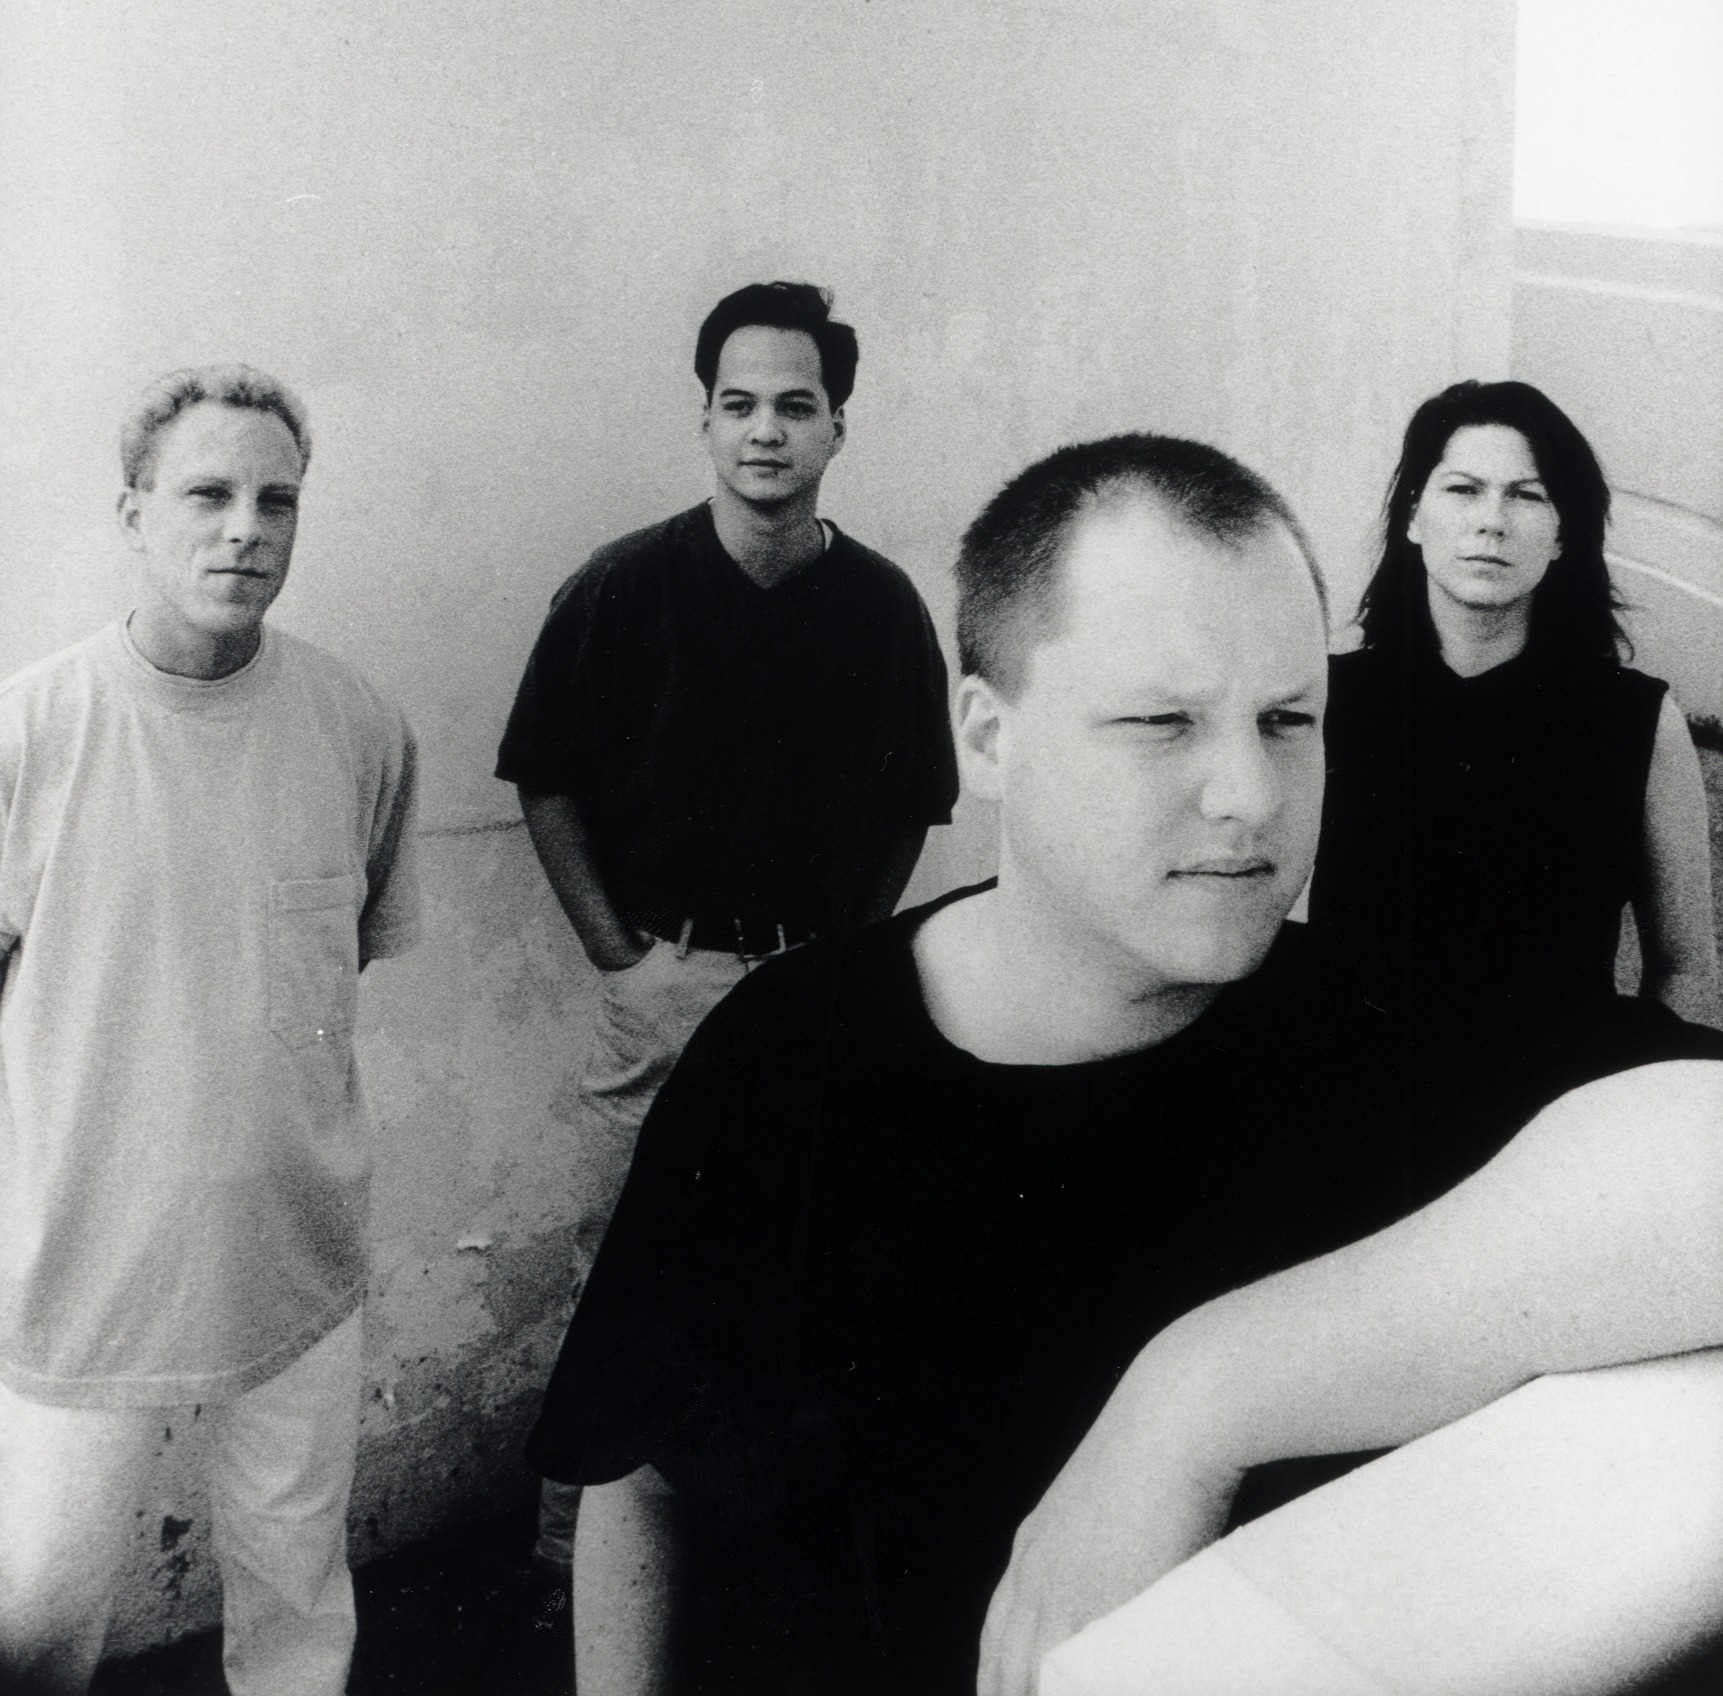 PIXIES announce 'Bossanova' 30th anniversary limited edition LP 2